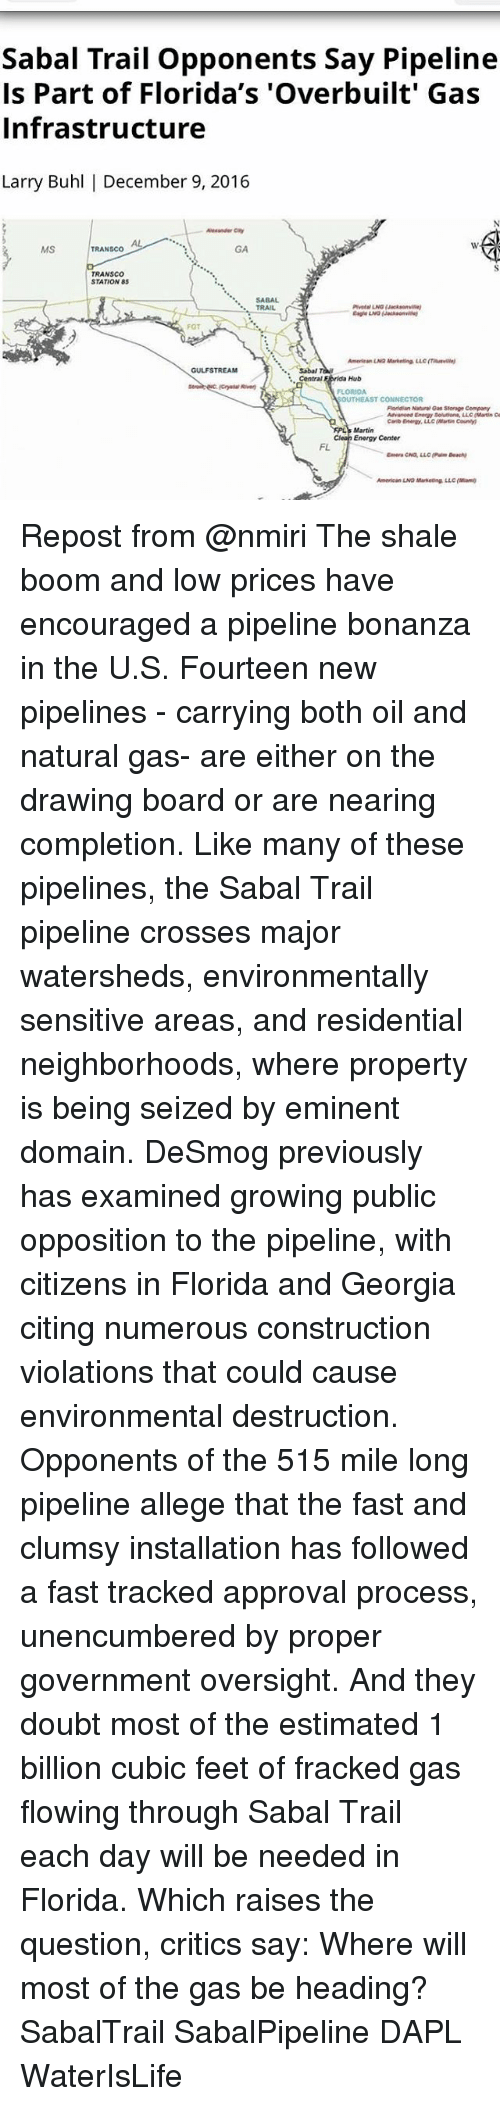 Sabal Trail Opponents Say Pipeline Is Part of Florida's 'Overbuilt